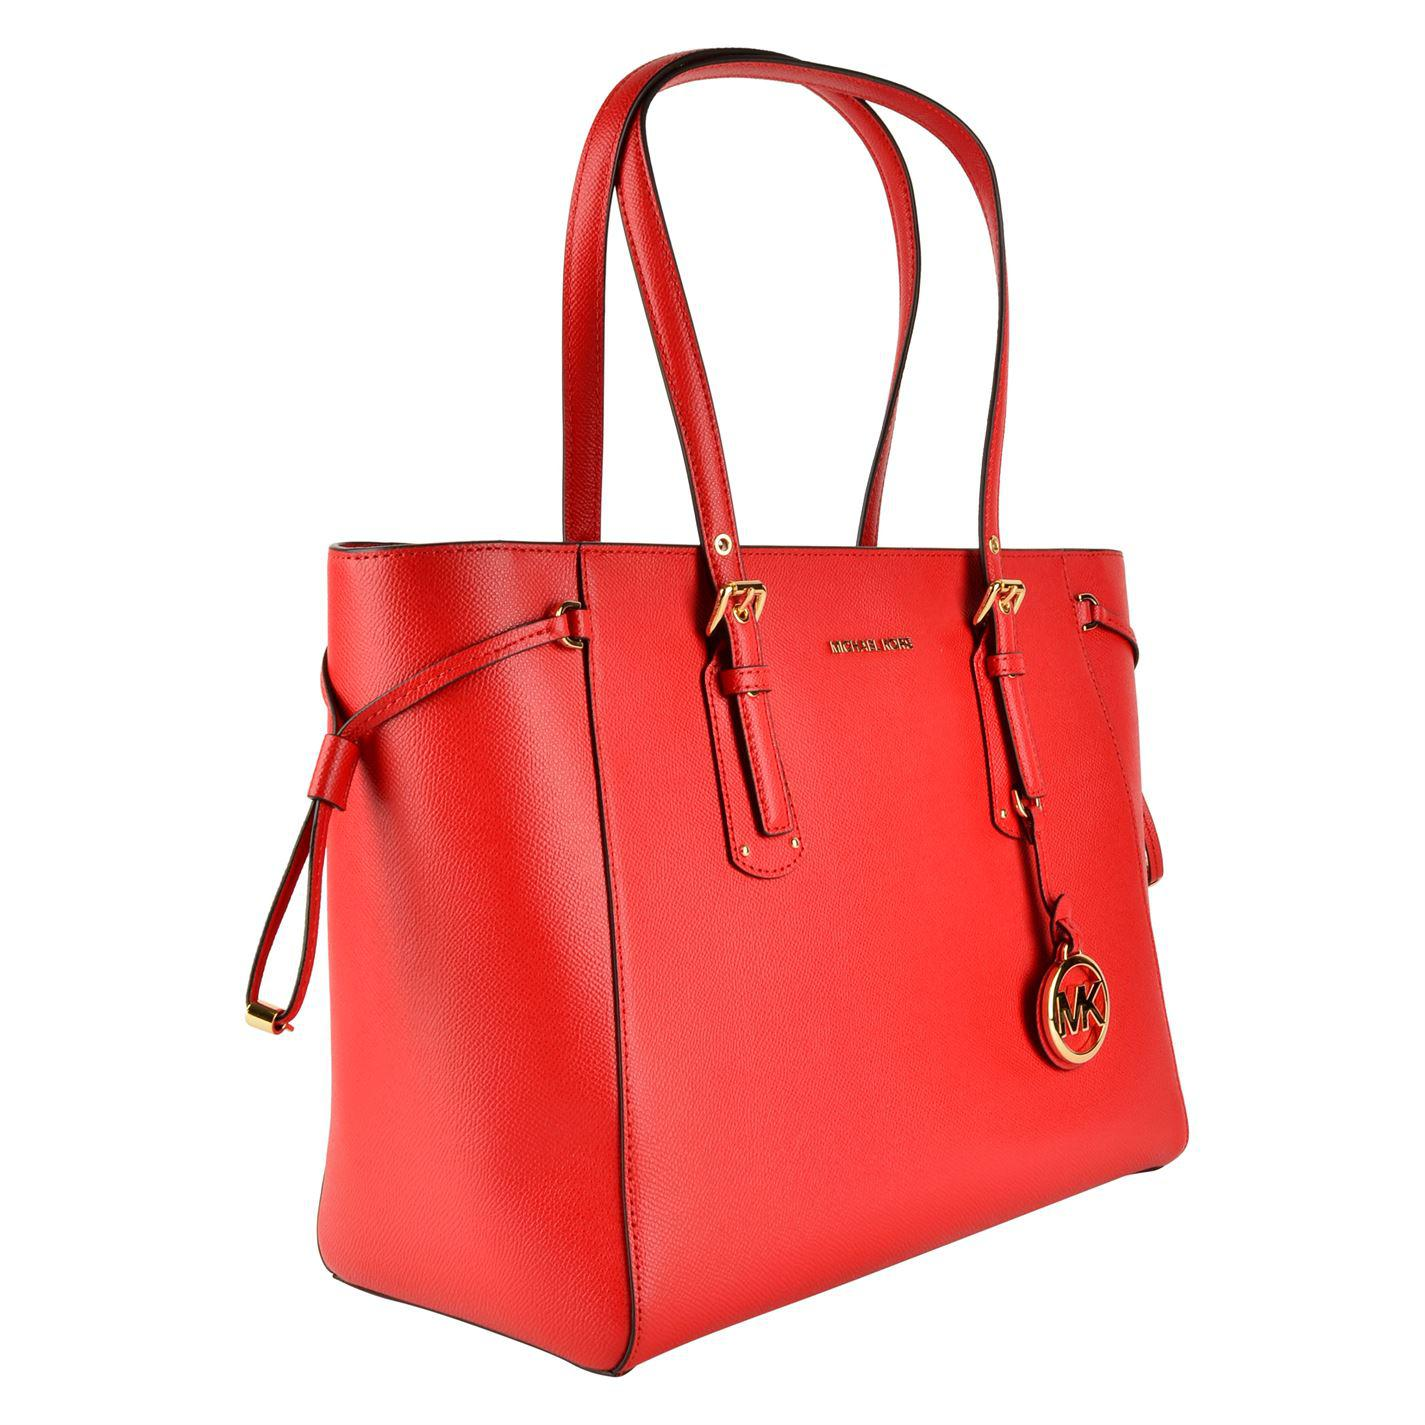 MICHAEL Michael Kors Leather Voyager Tote Bag in Red